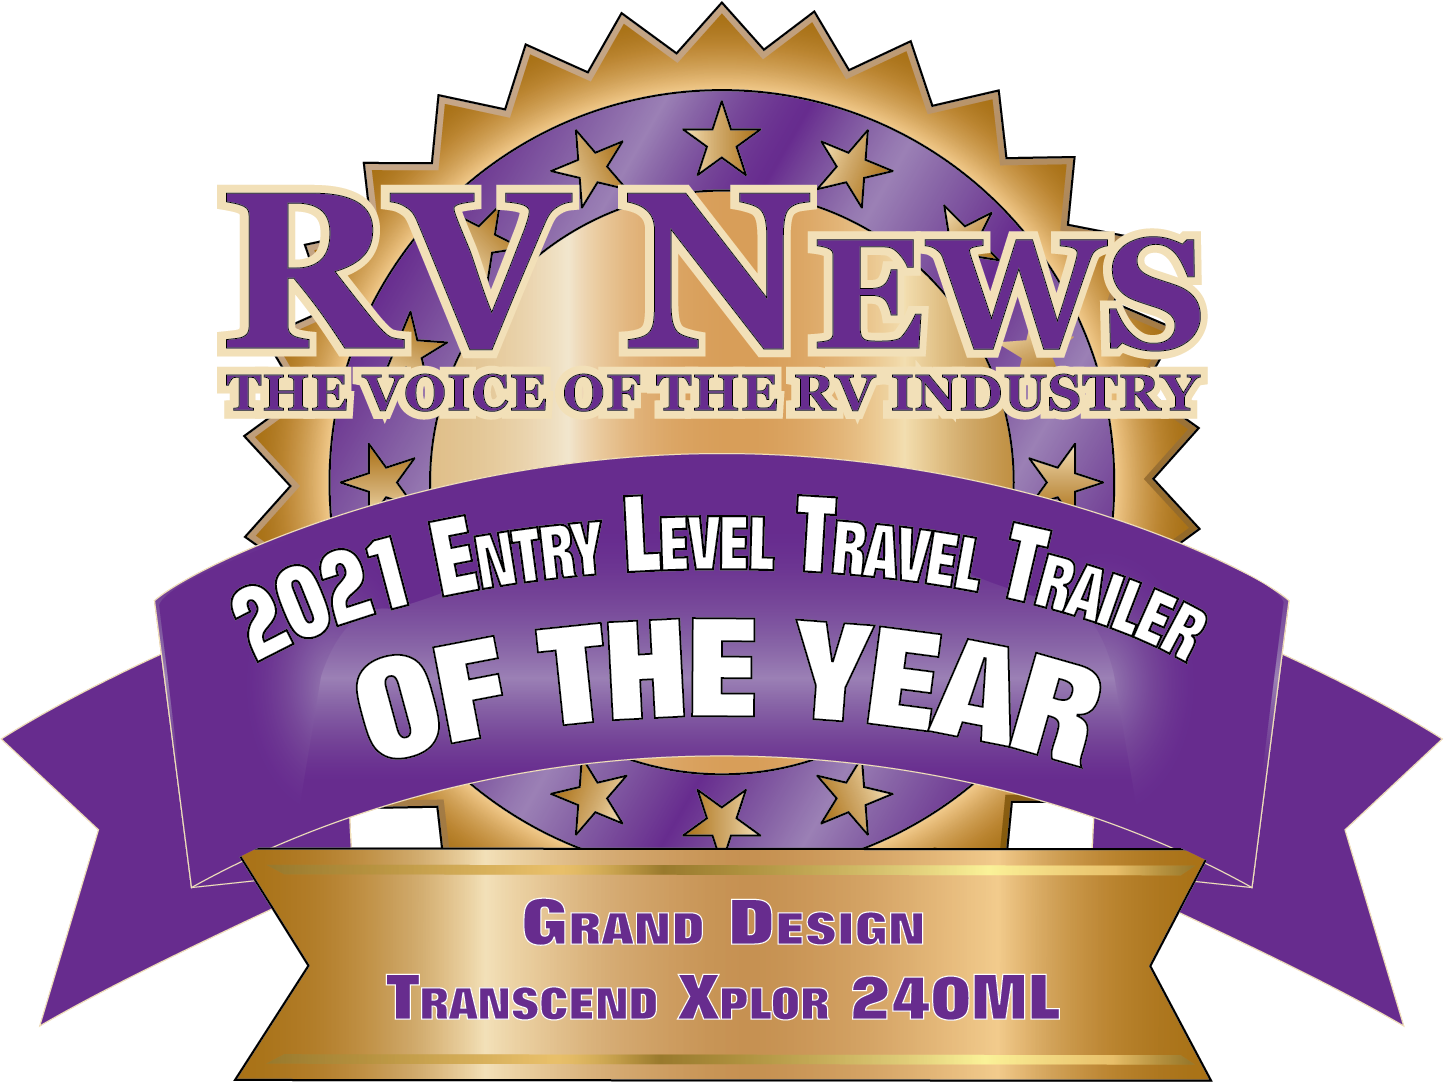 RV News 2021 Entry Level Travel Trailer of the Year TRANSCEND XPLOR.png